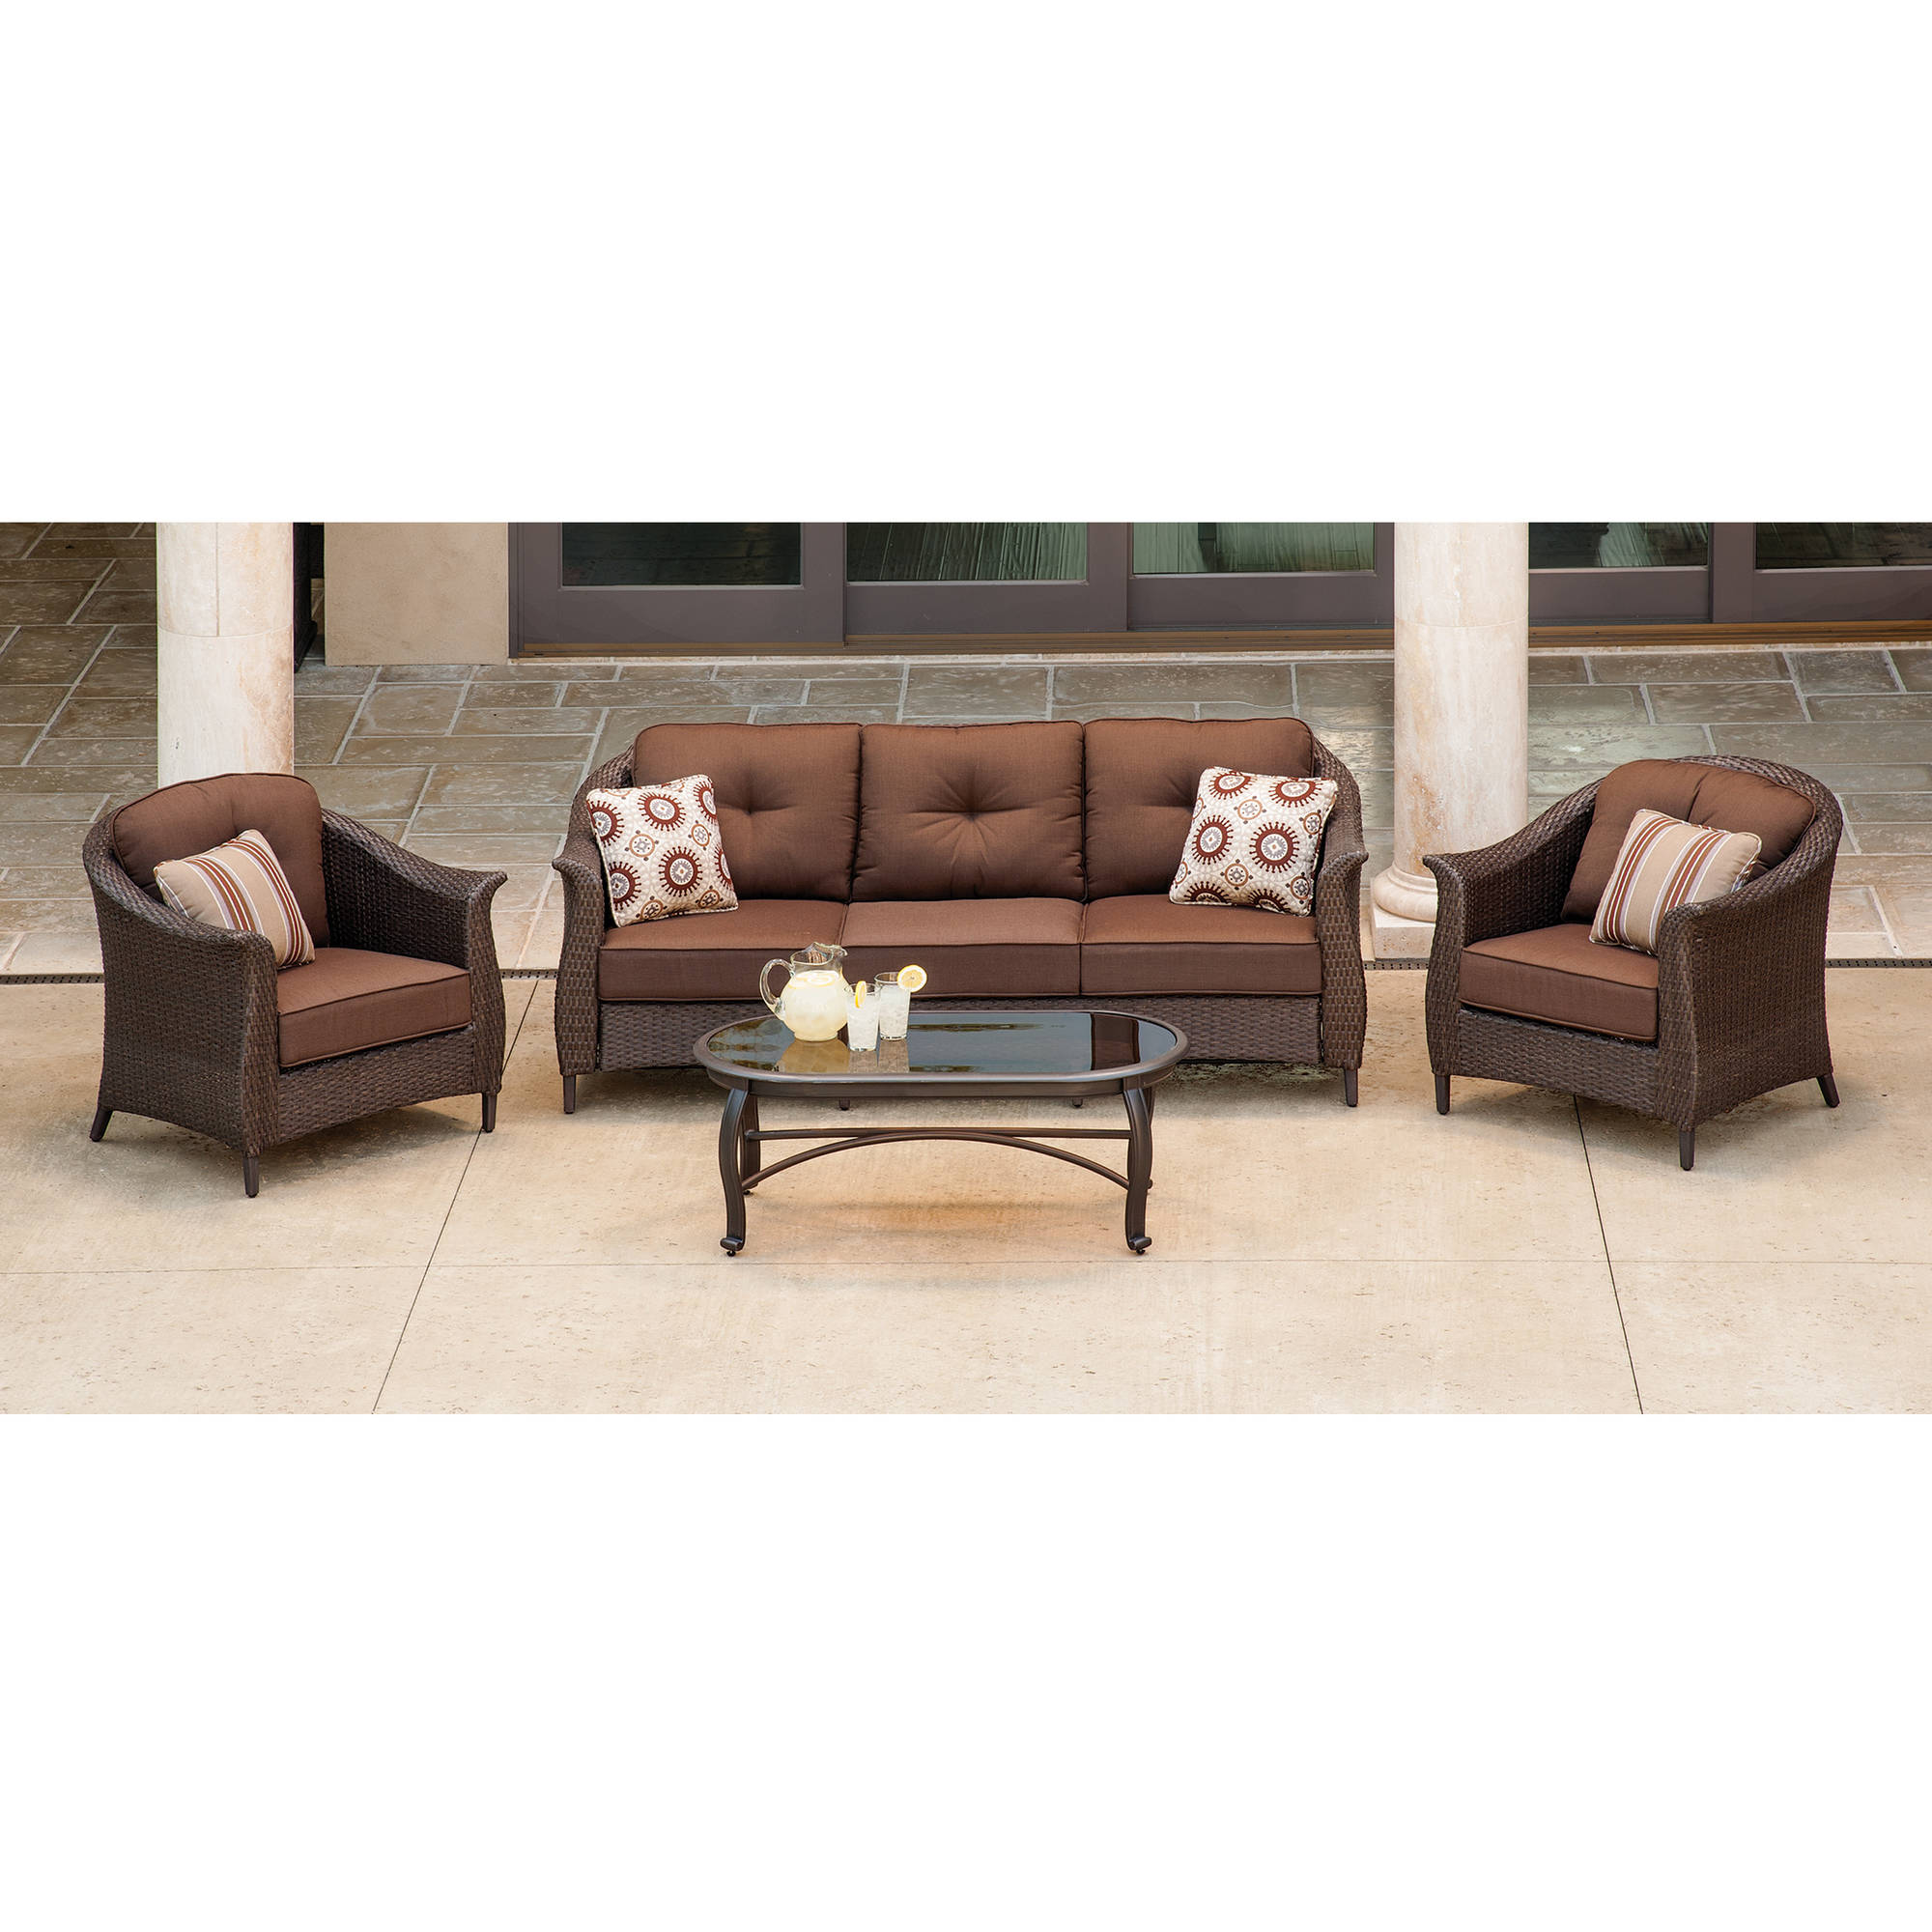 Hanover Outdoor Furniture Gramercy 4-Piece Wicker Patio Seating Set, Brown by Hanover Outdoor Furniture